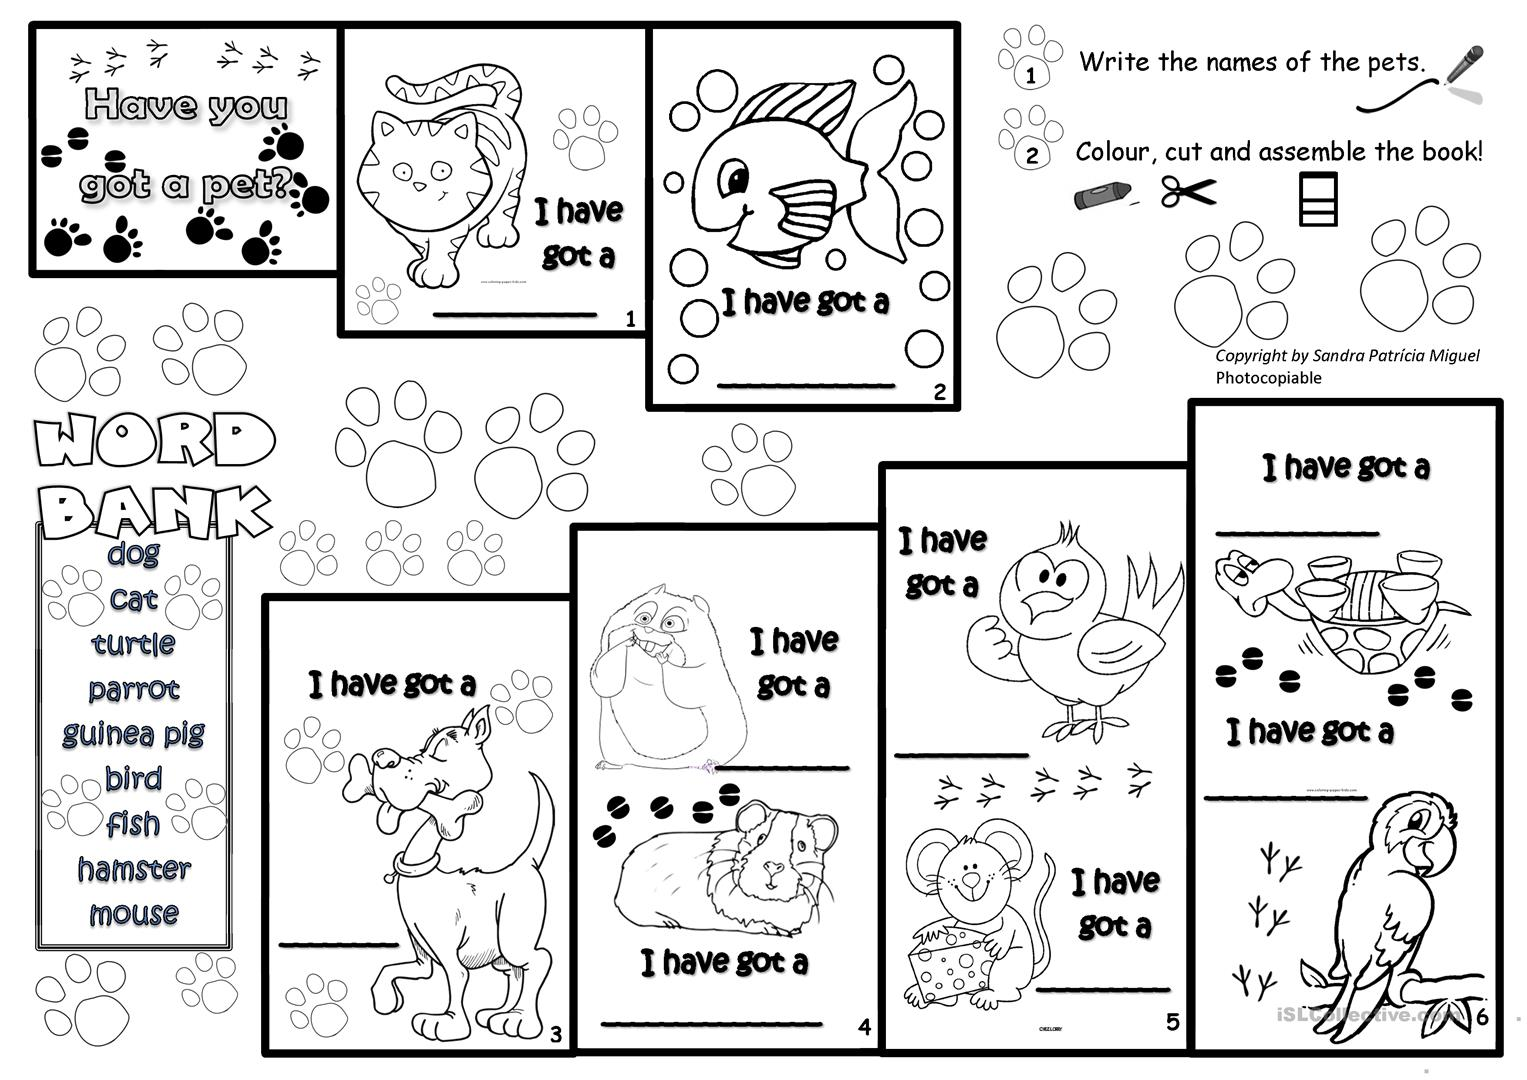 Pets Stepbook Worksheet